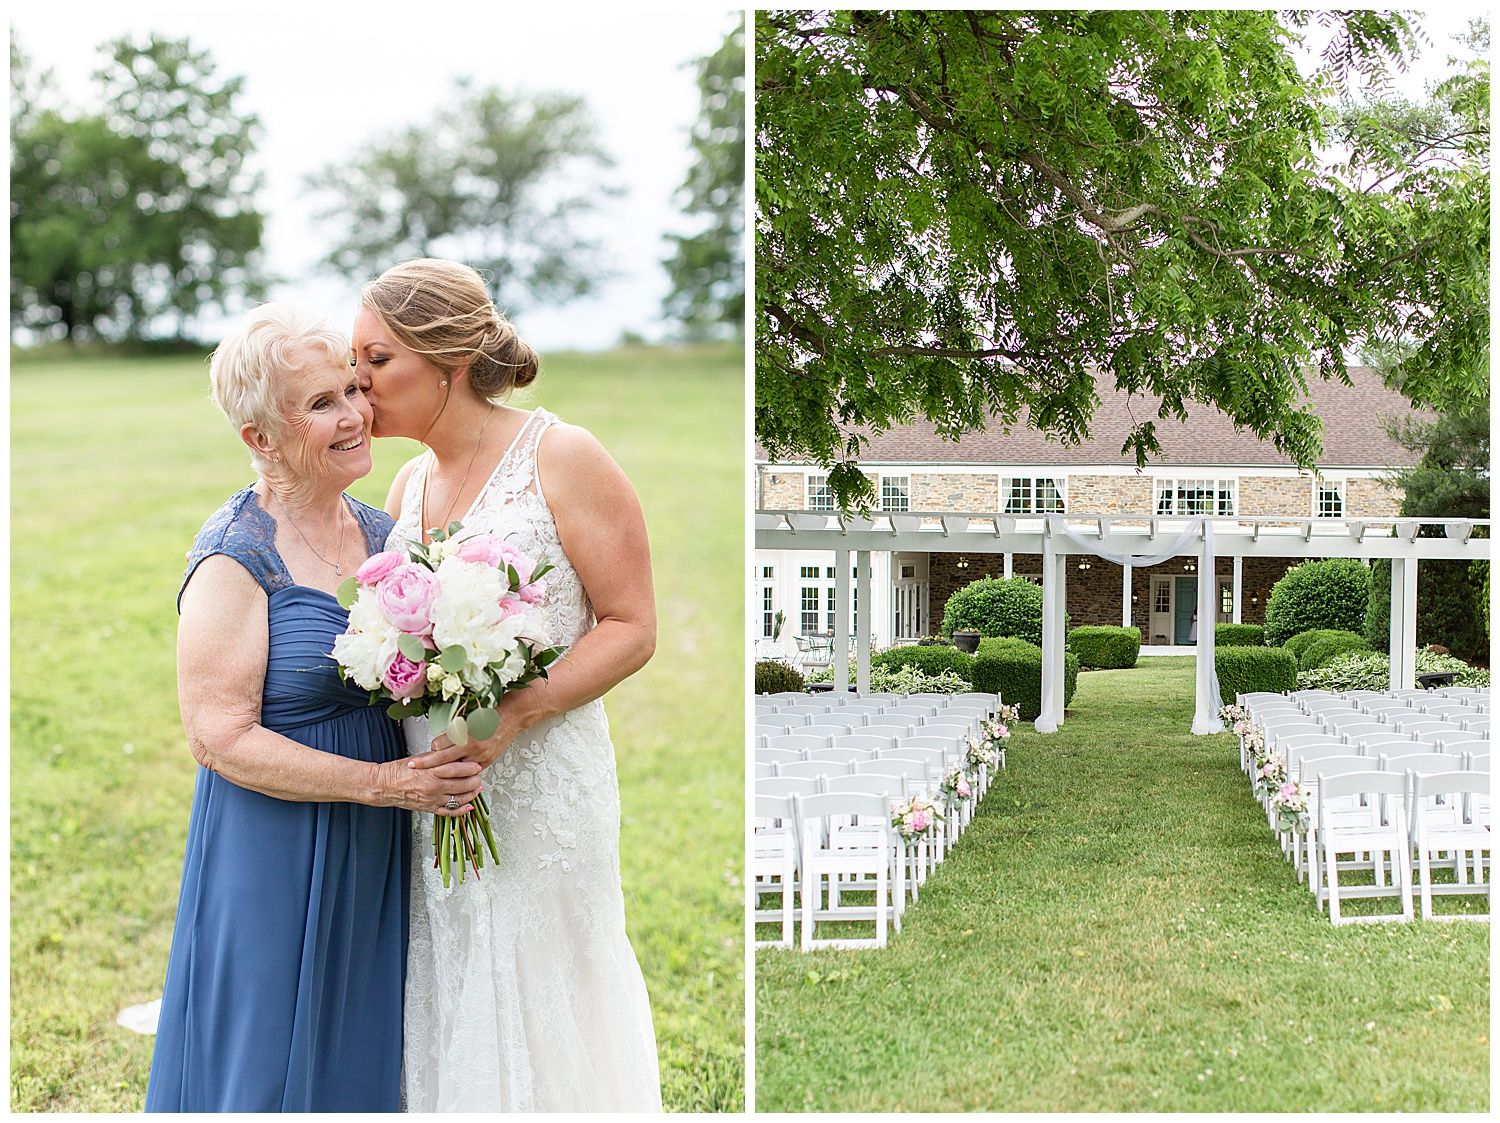 stone-manor-country-club-wedding-emily-belson-photography-55.jpg